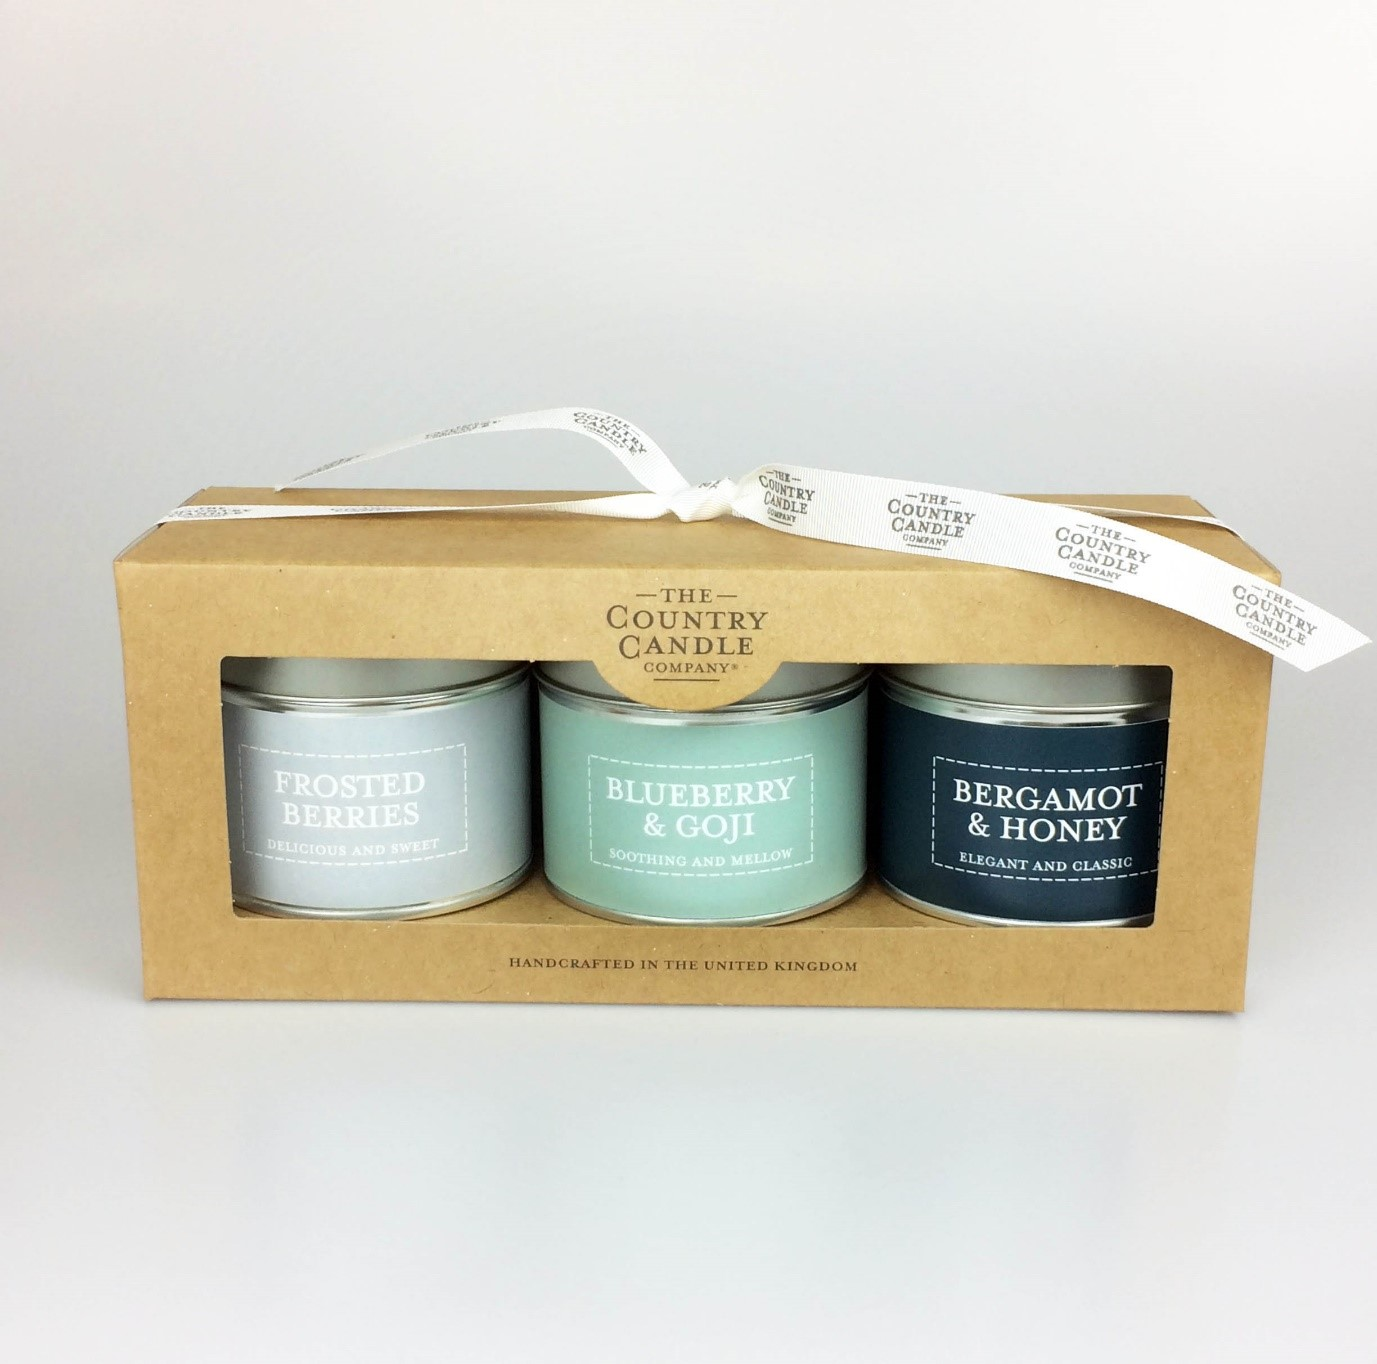 The Country Candle Company